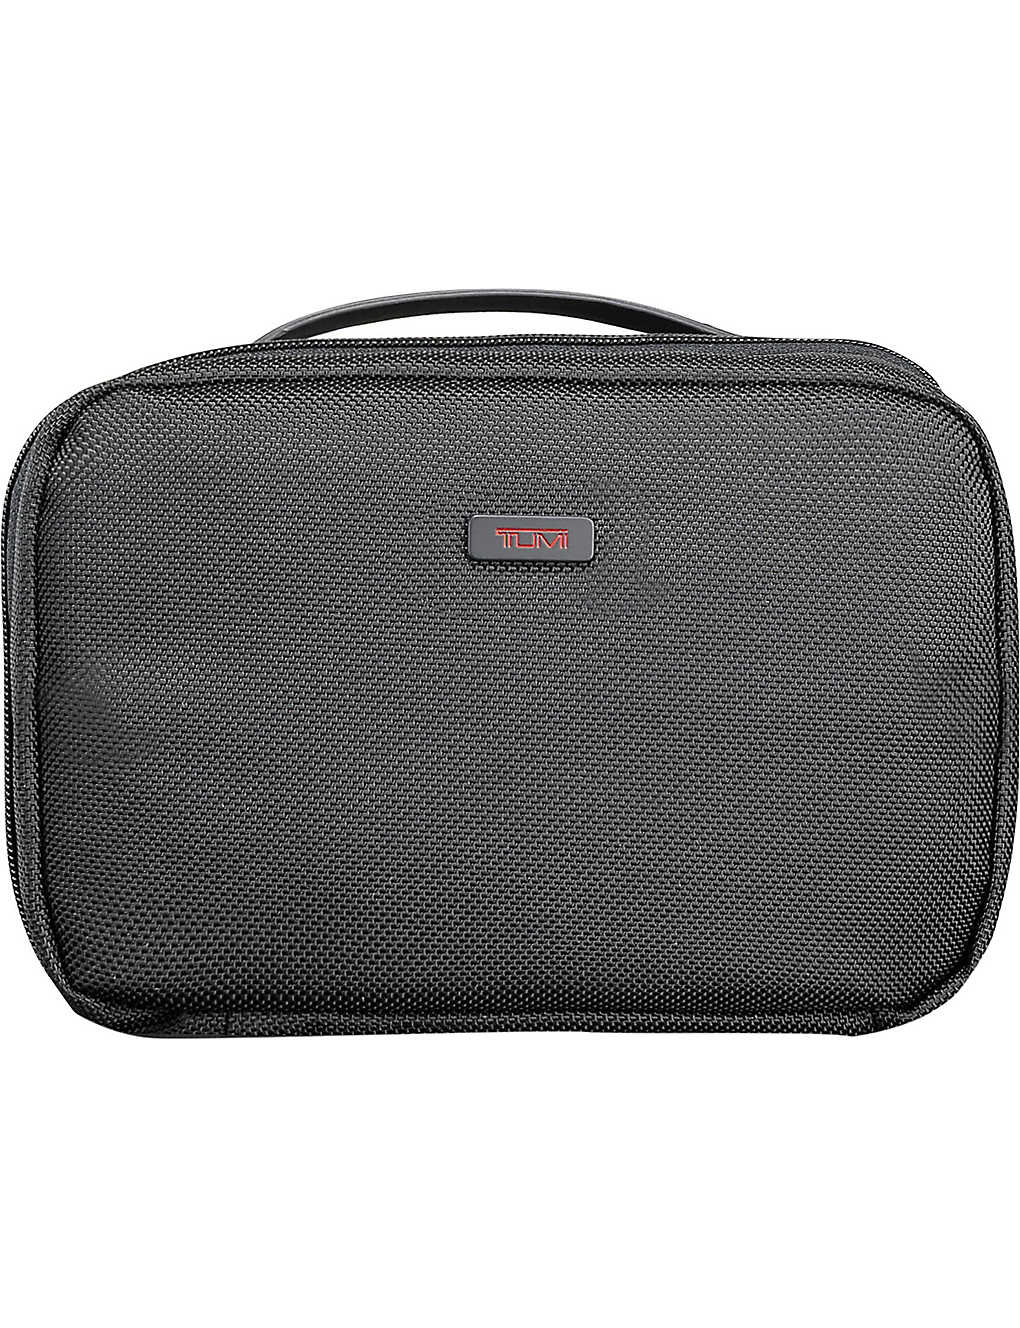 fa0aae9942 TUMI - Alpha 2 split toiletry bag